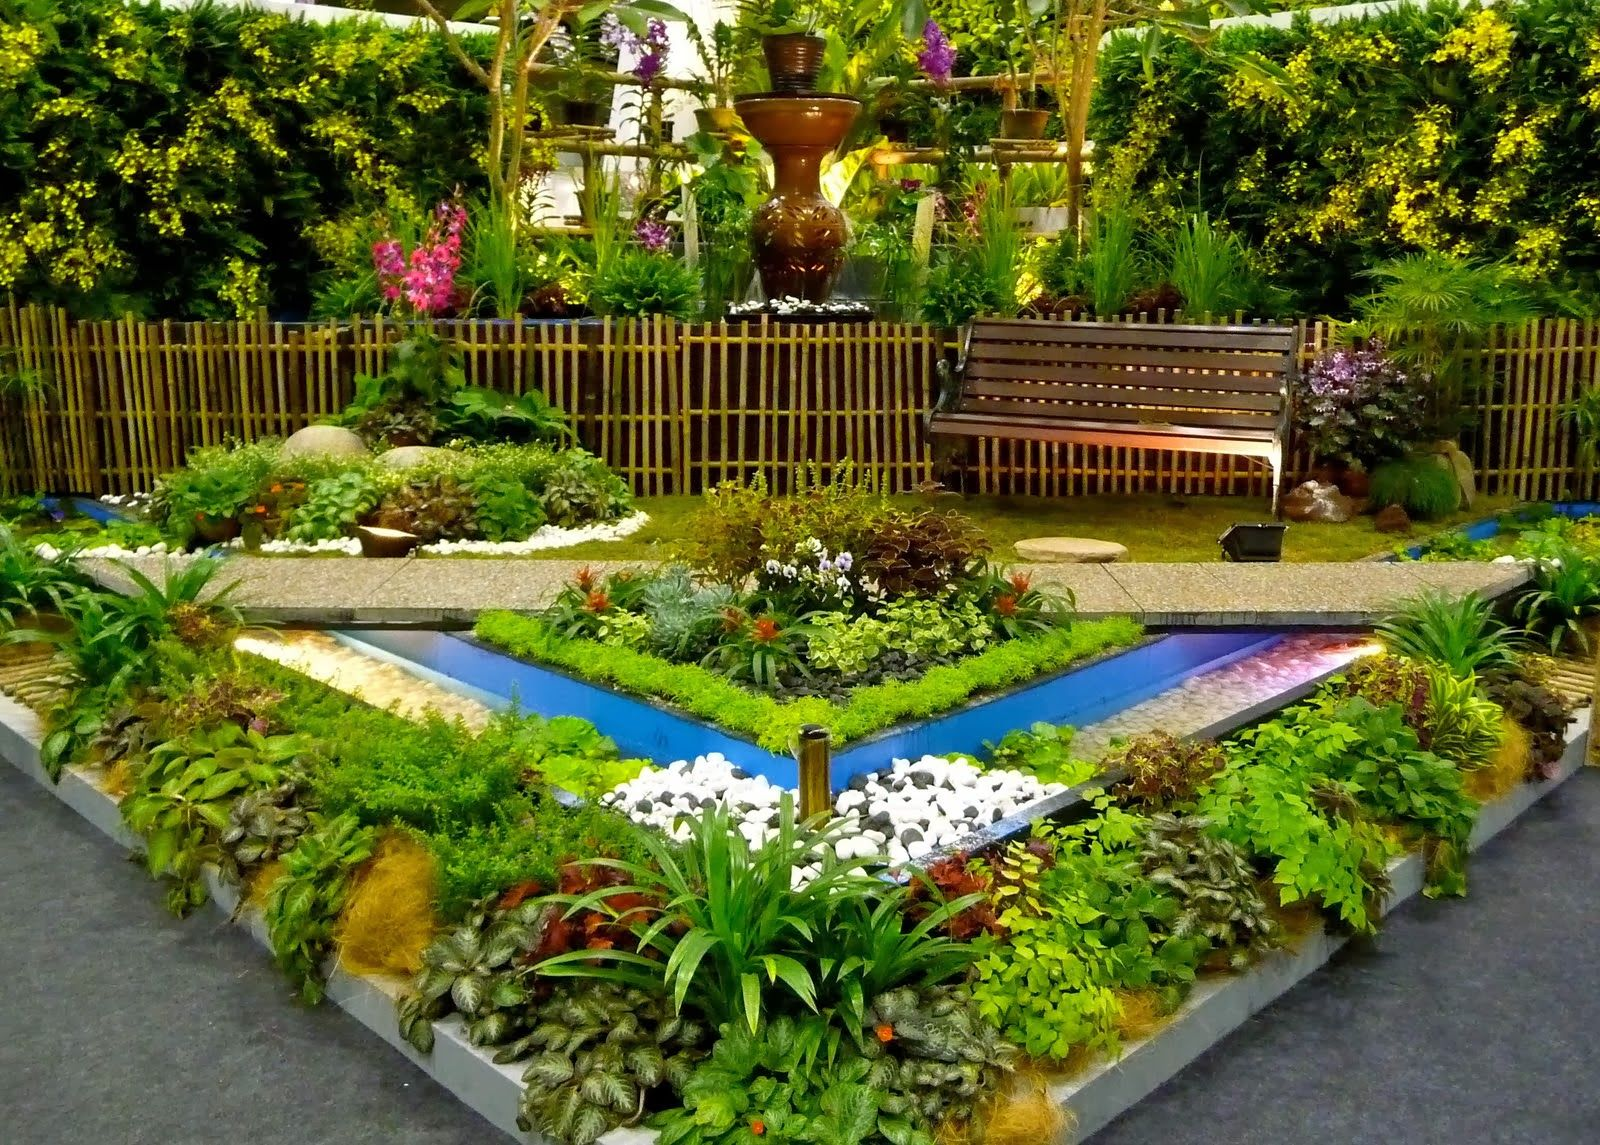 Best landscaping ideas i have ever seen wow design for Garden landscape photos